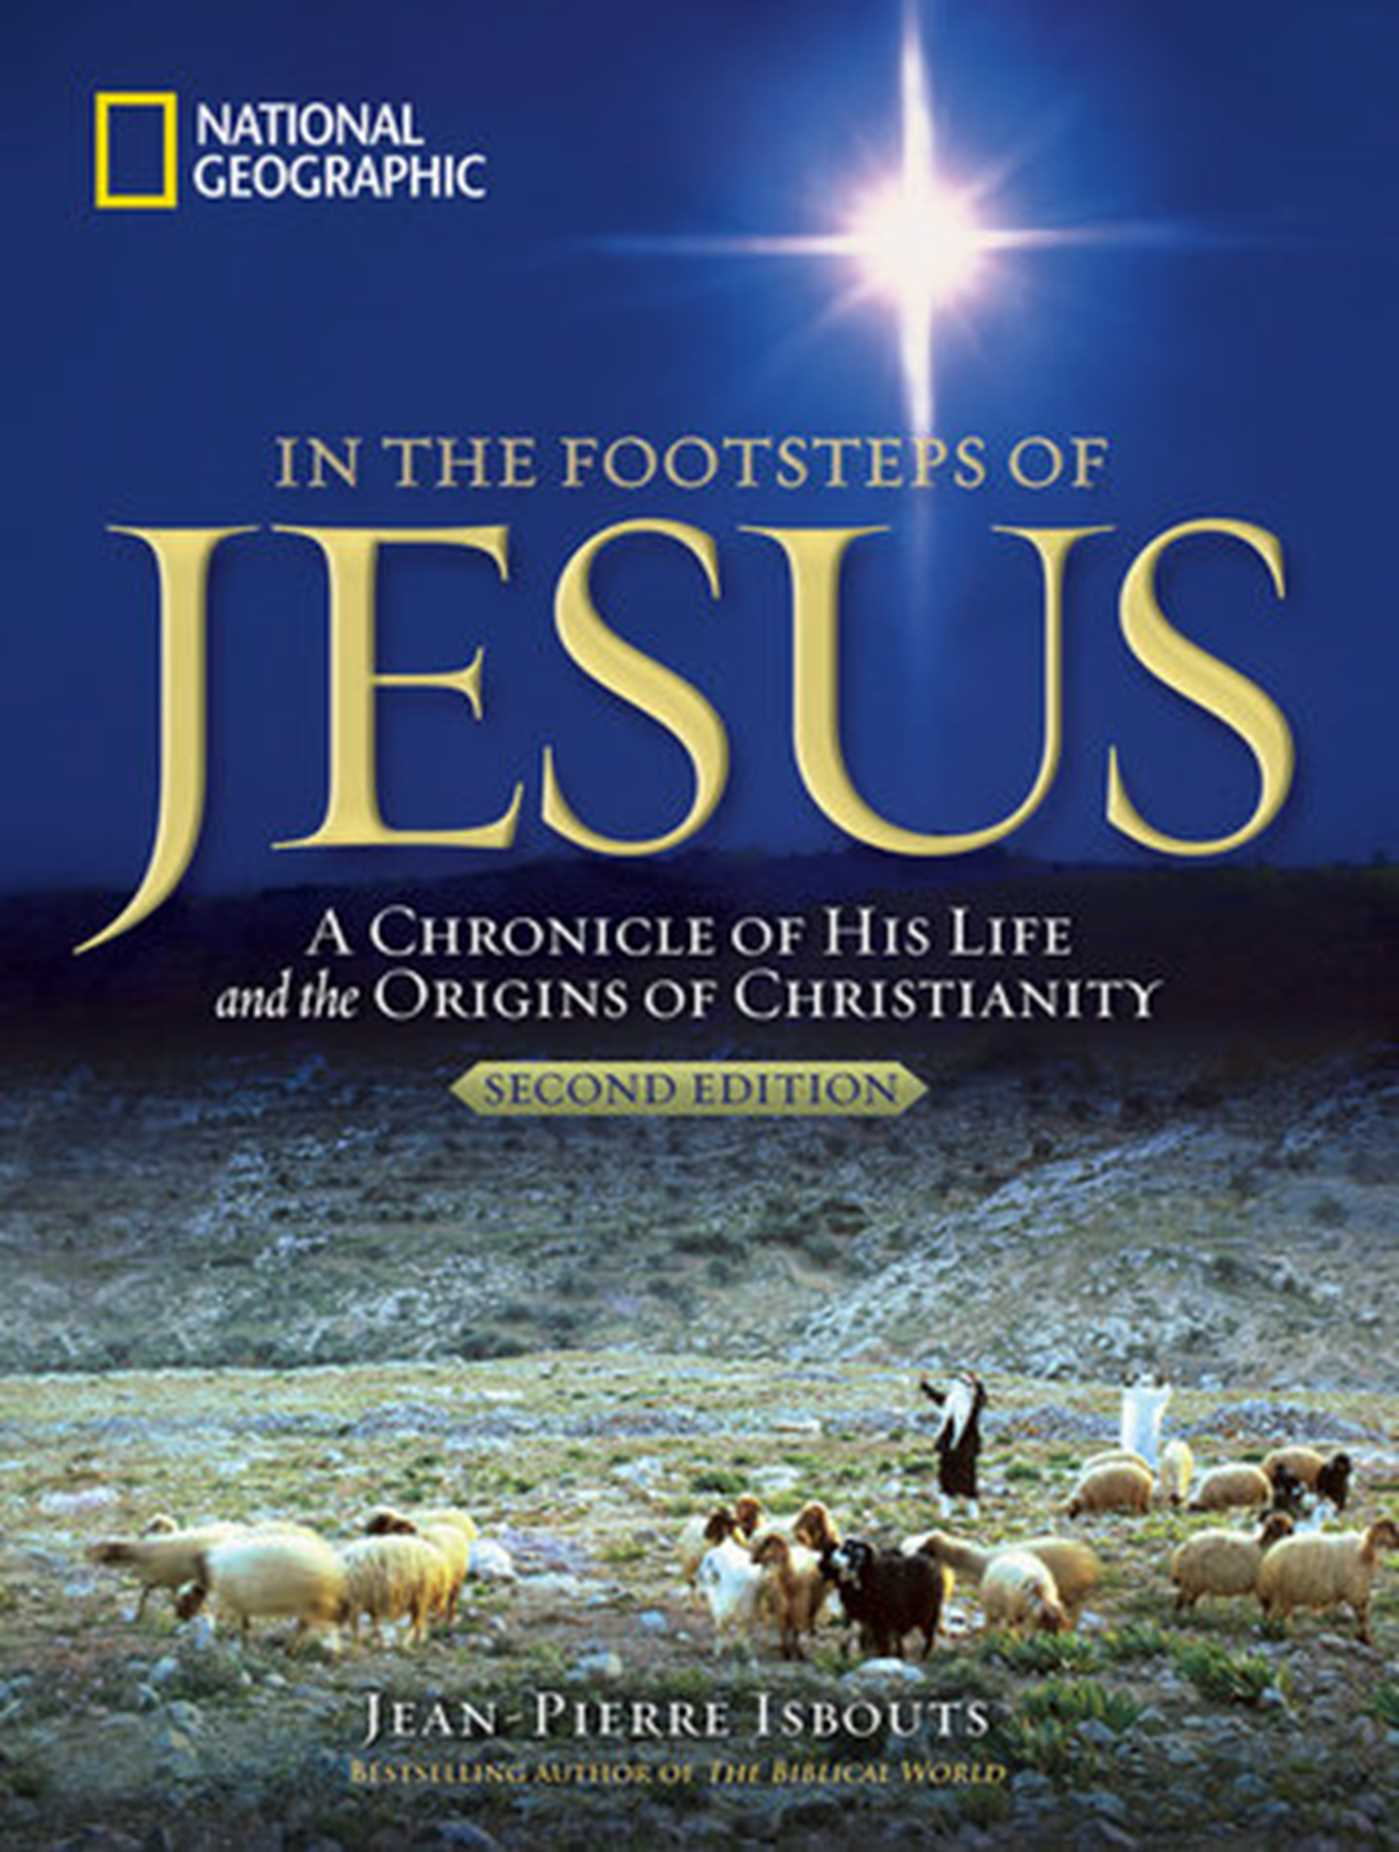 In the footsteps of jesus a journey through his life 9781426219139 hr